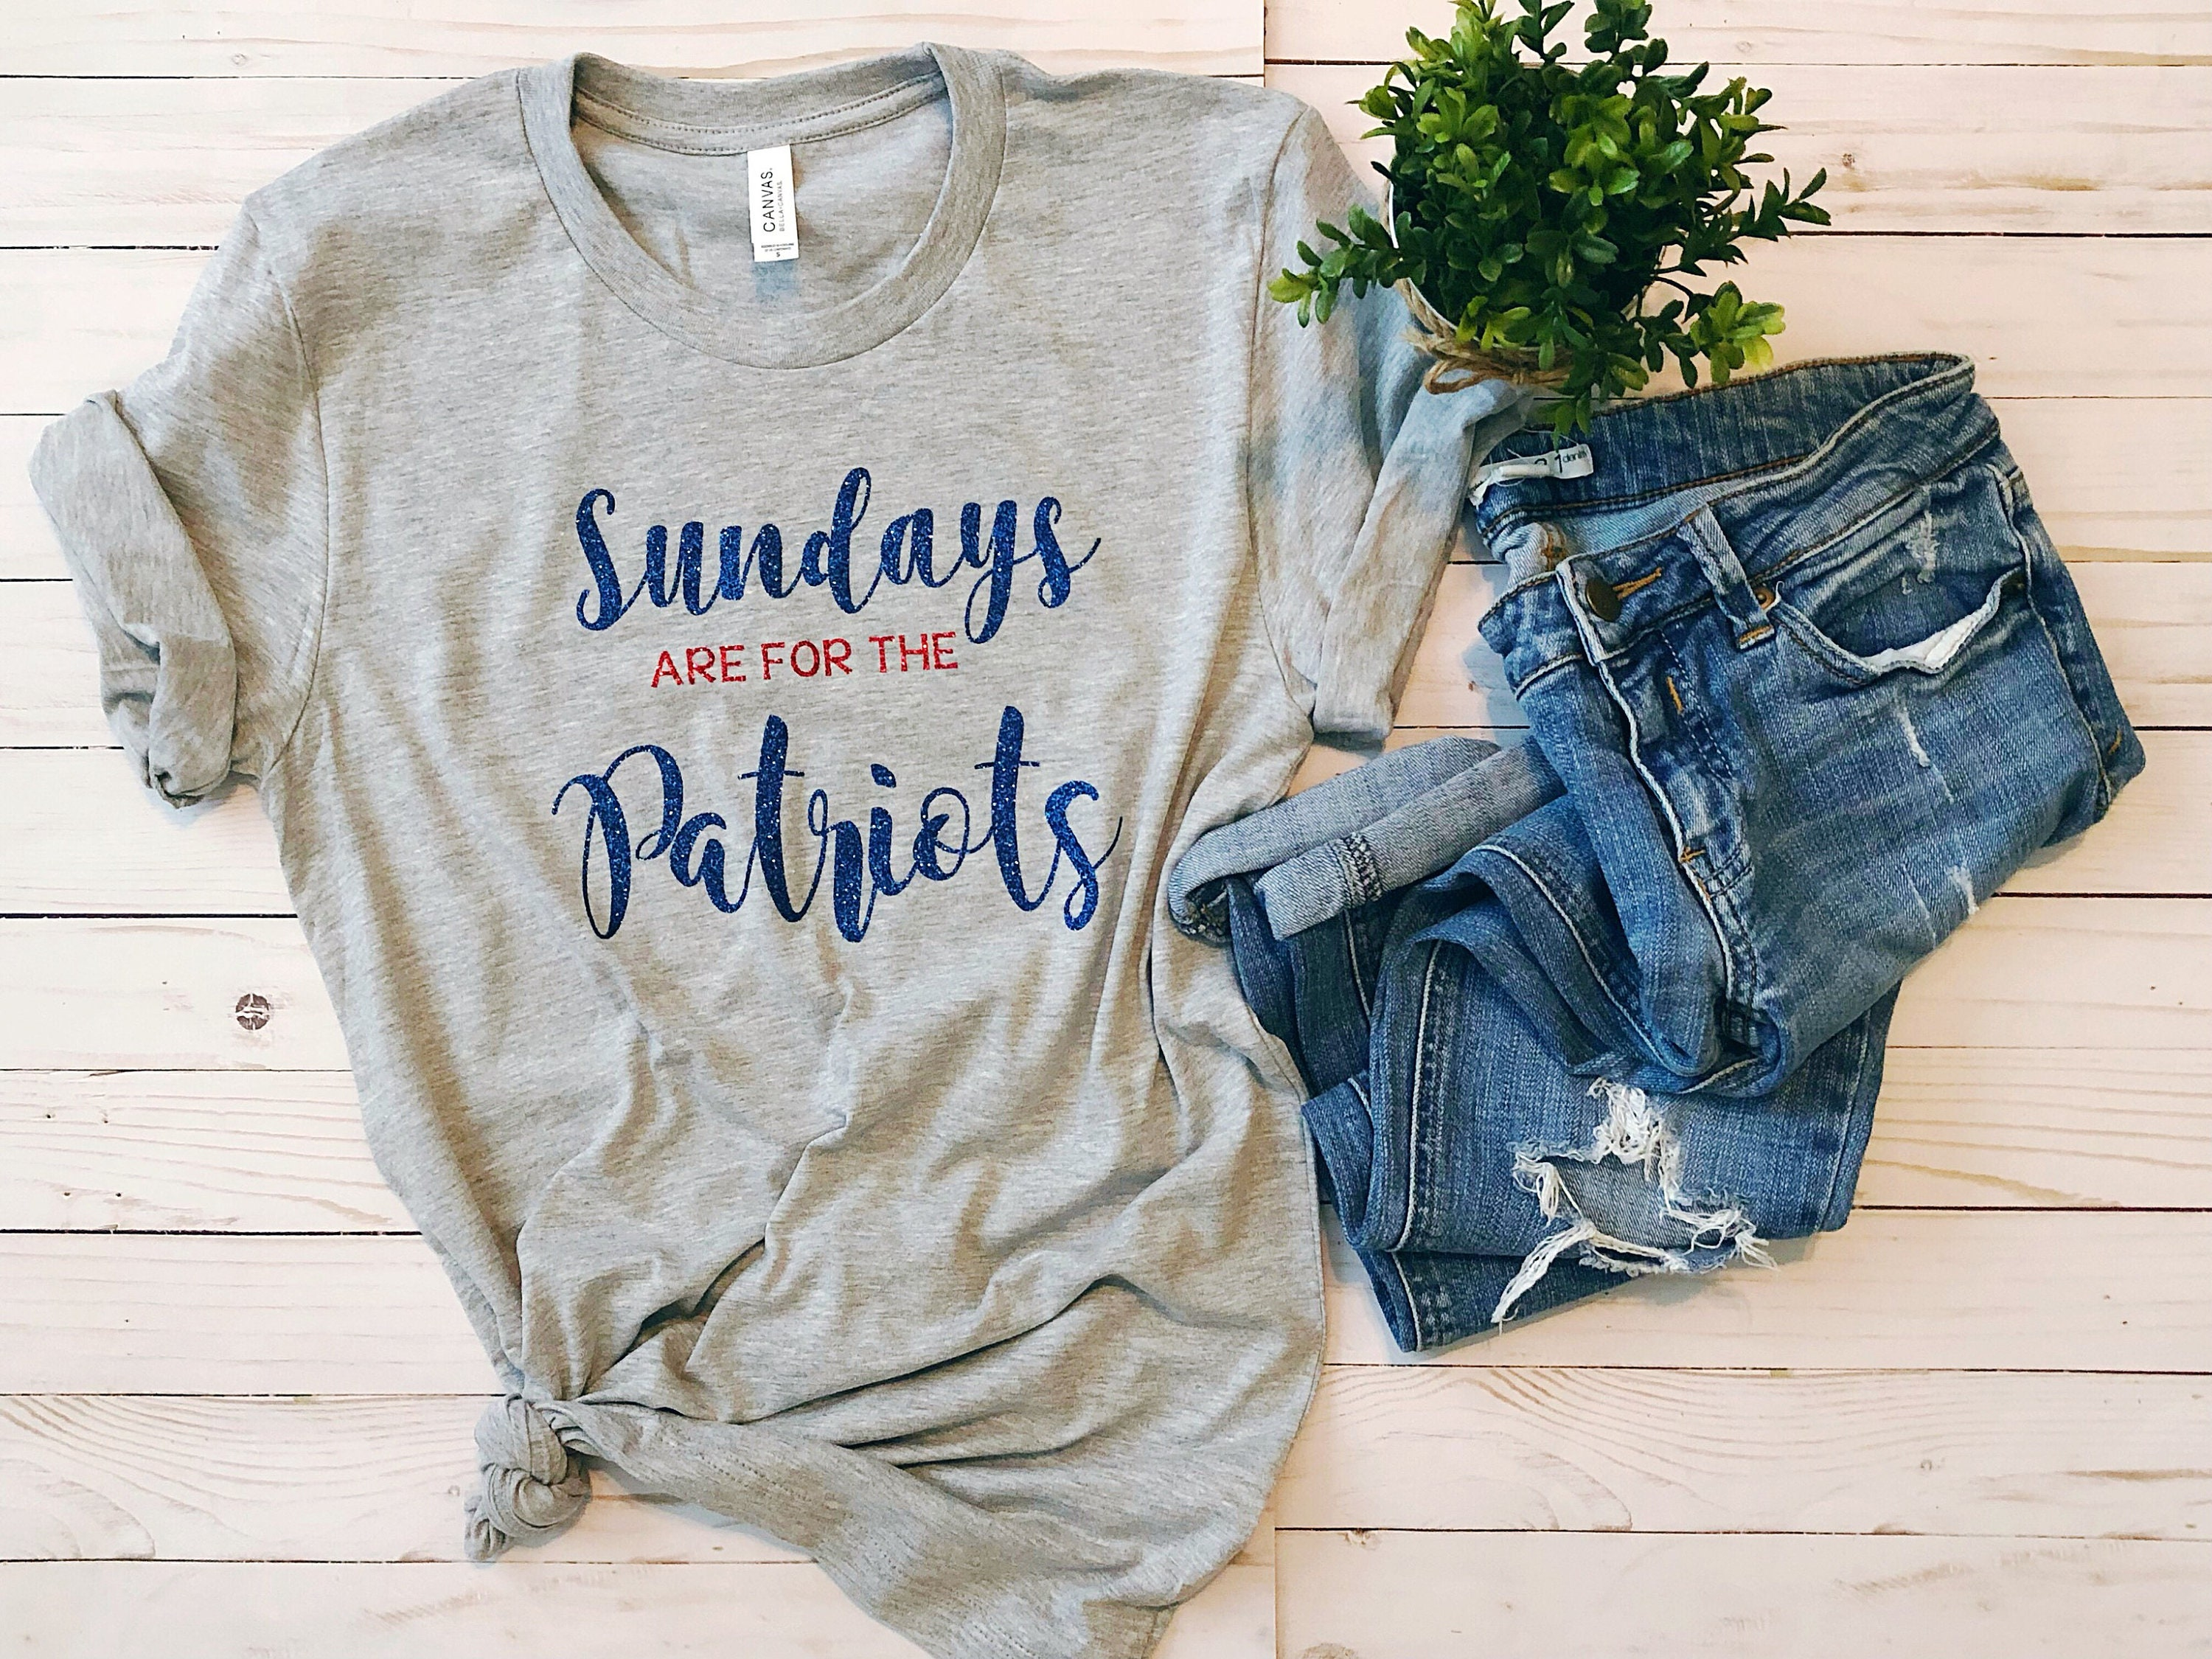 Sundays are for the Patriots, Womens Patriots Shirt, Football Shirt, Patriots Shirt, Subday Funday, Sundays are for football